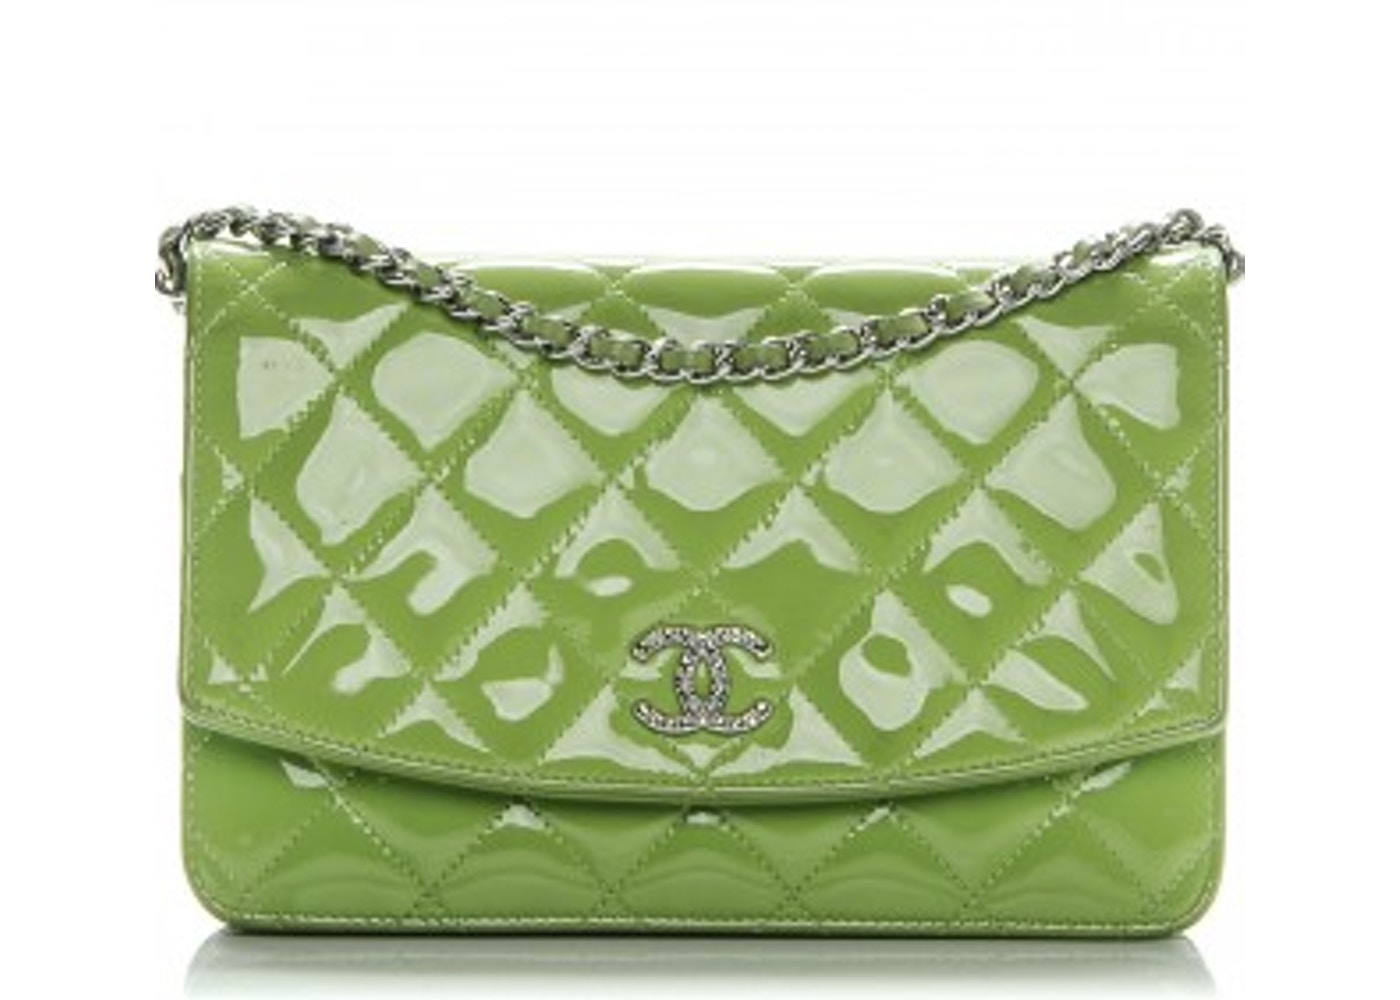 1706d19b2922de Chanel Brilliant Wallet On Chain Diamond Quilted Glossy Bright Green.  Diamond Quilted Glossy Bright Green